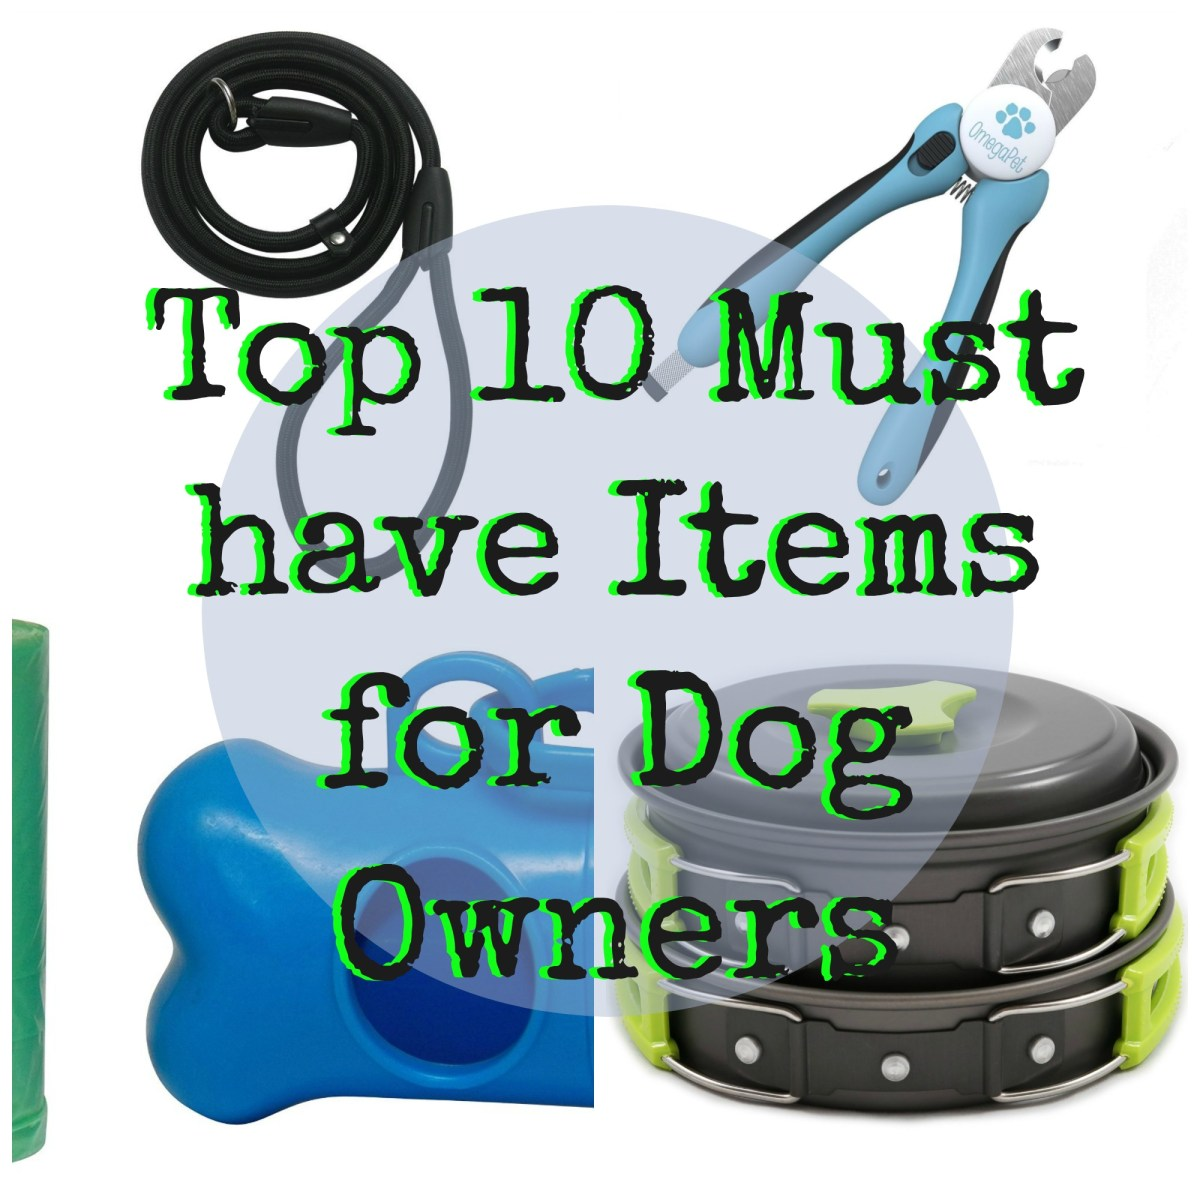 Top 10 Must have Items for Dog Owners